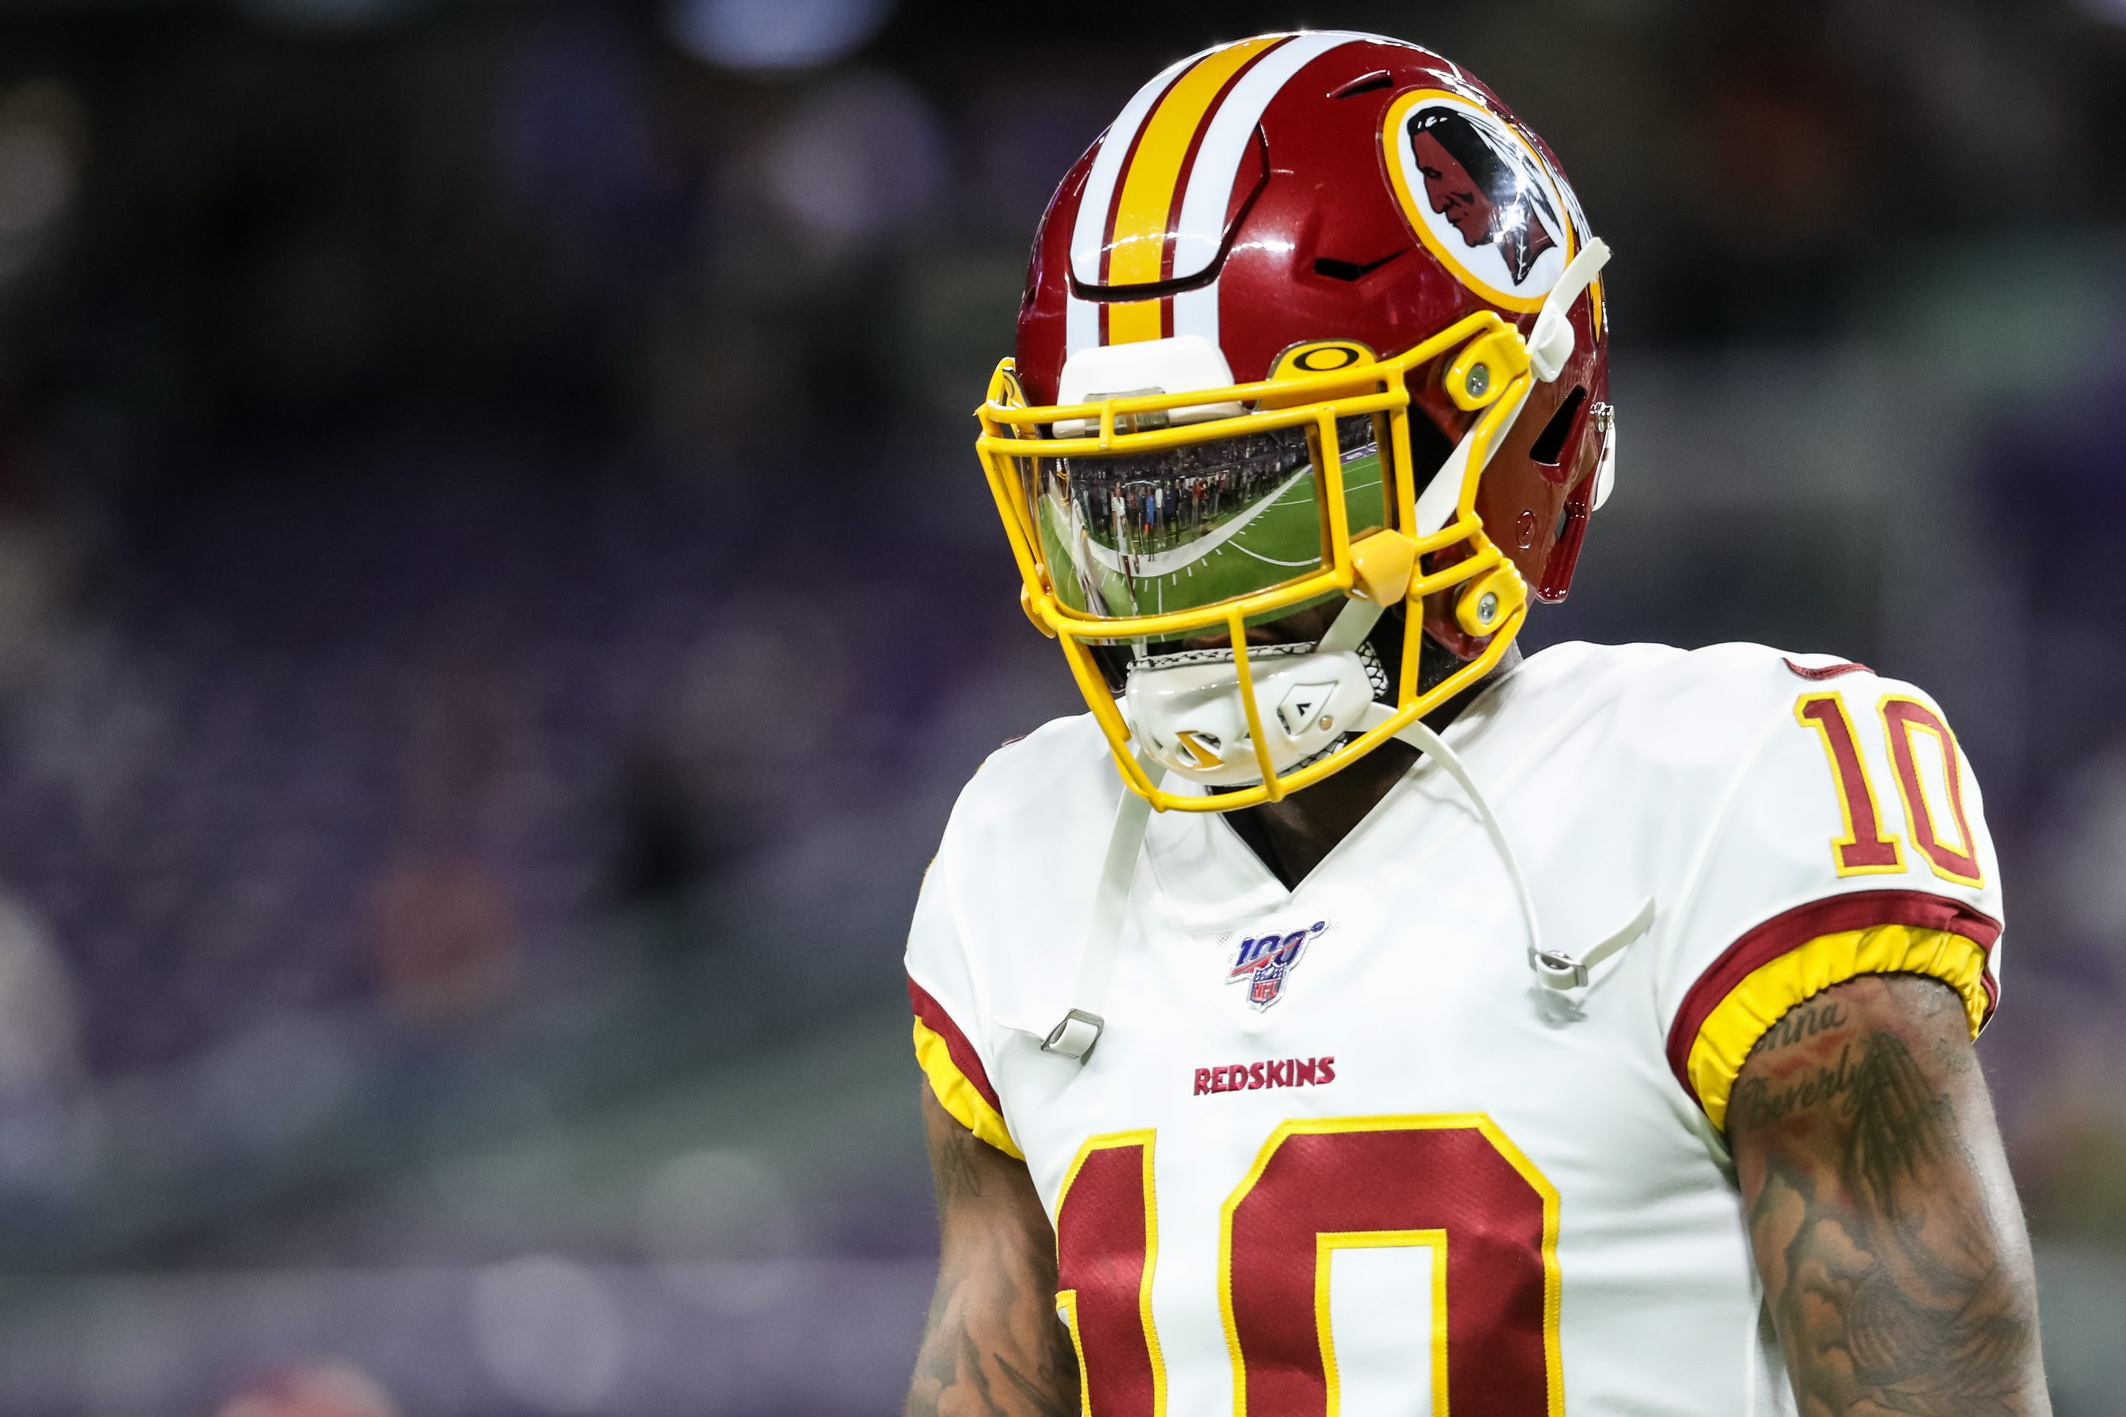 NFL Insider Predicts Broncos to 'Sniff Around' Redskins' Speedster WR Paul Richardson